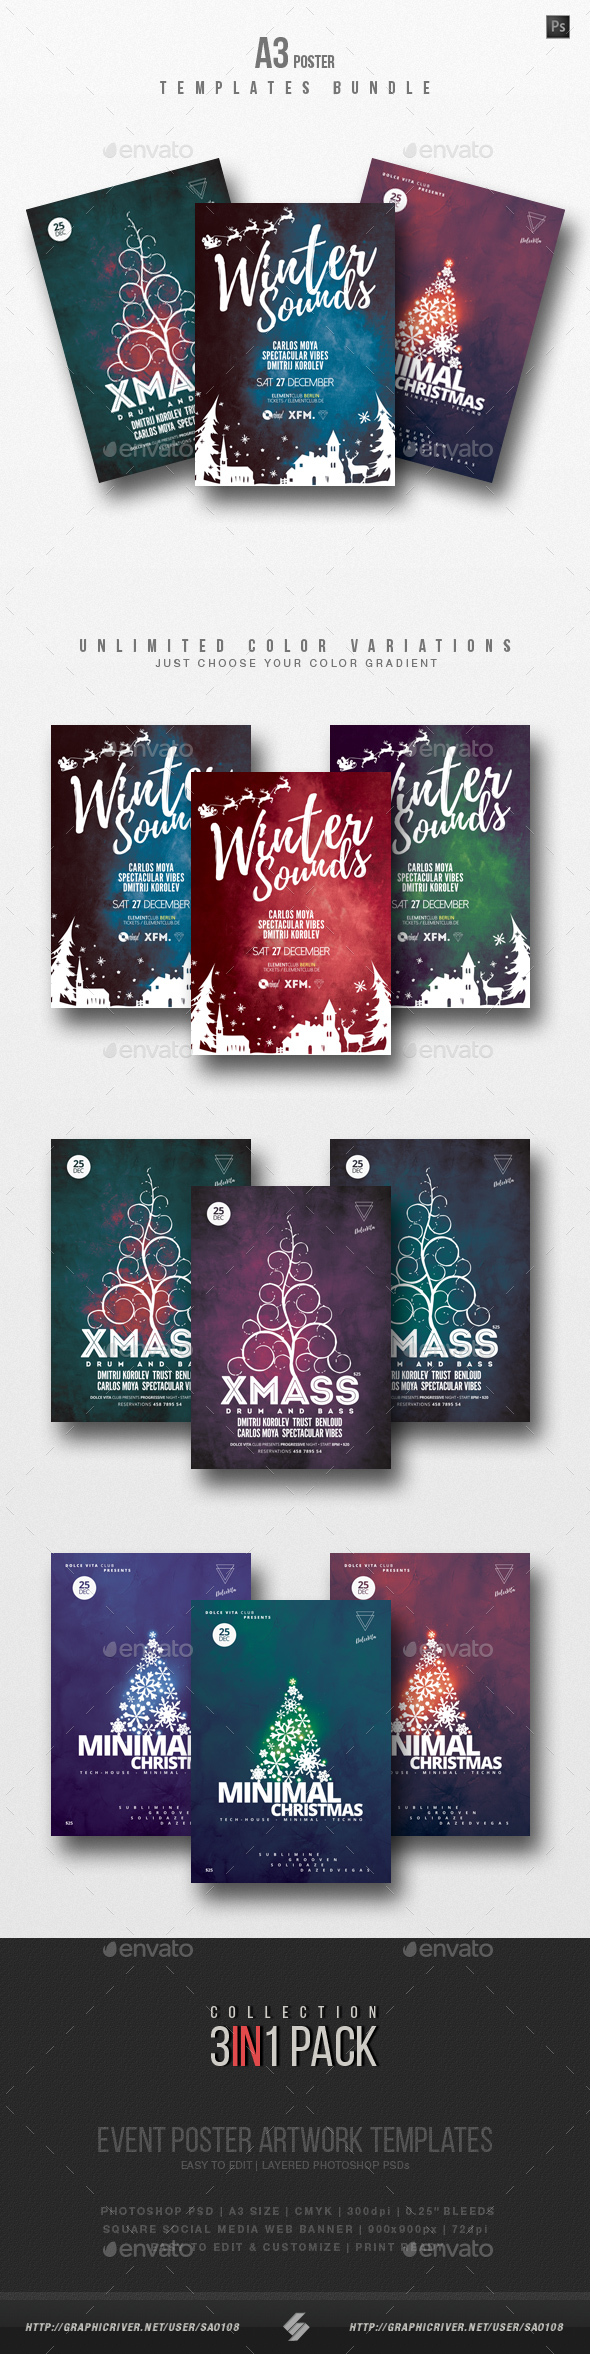 Winter Sound - Alternative Christmas Party Flyer Templates Bundle - Clubs & Parties Events